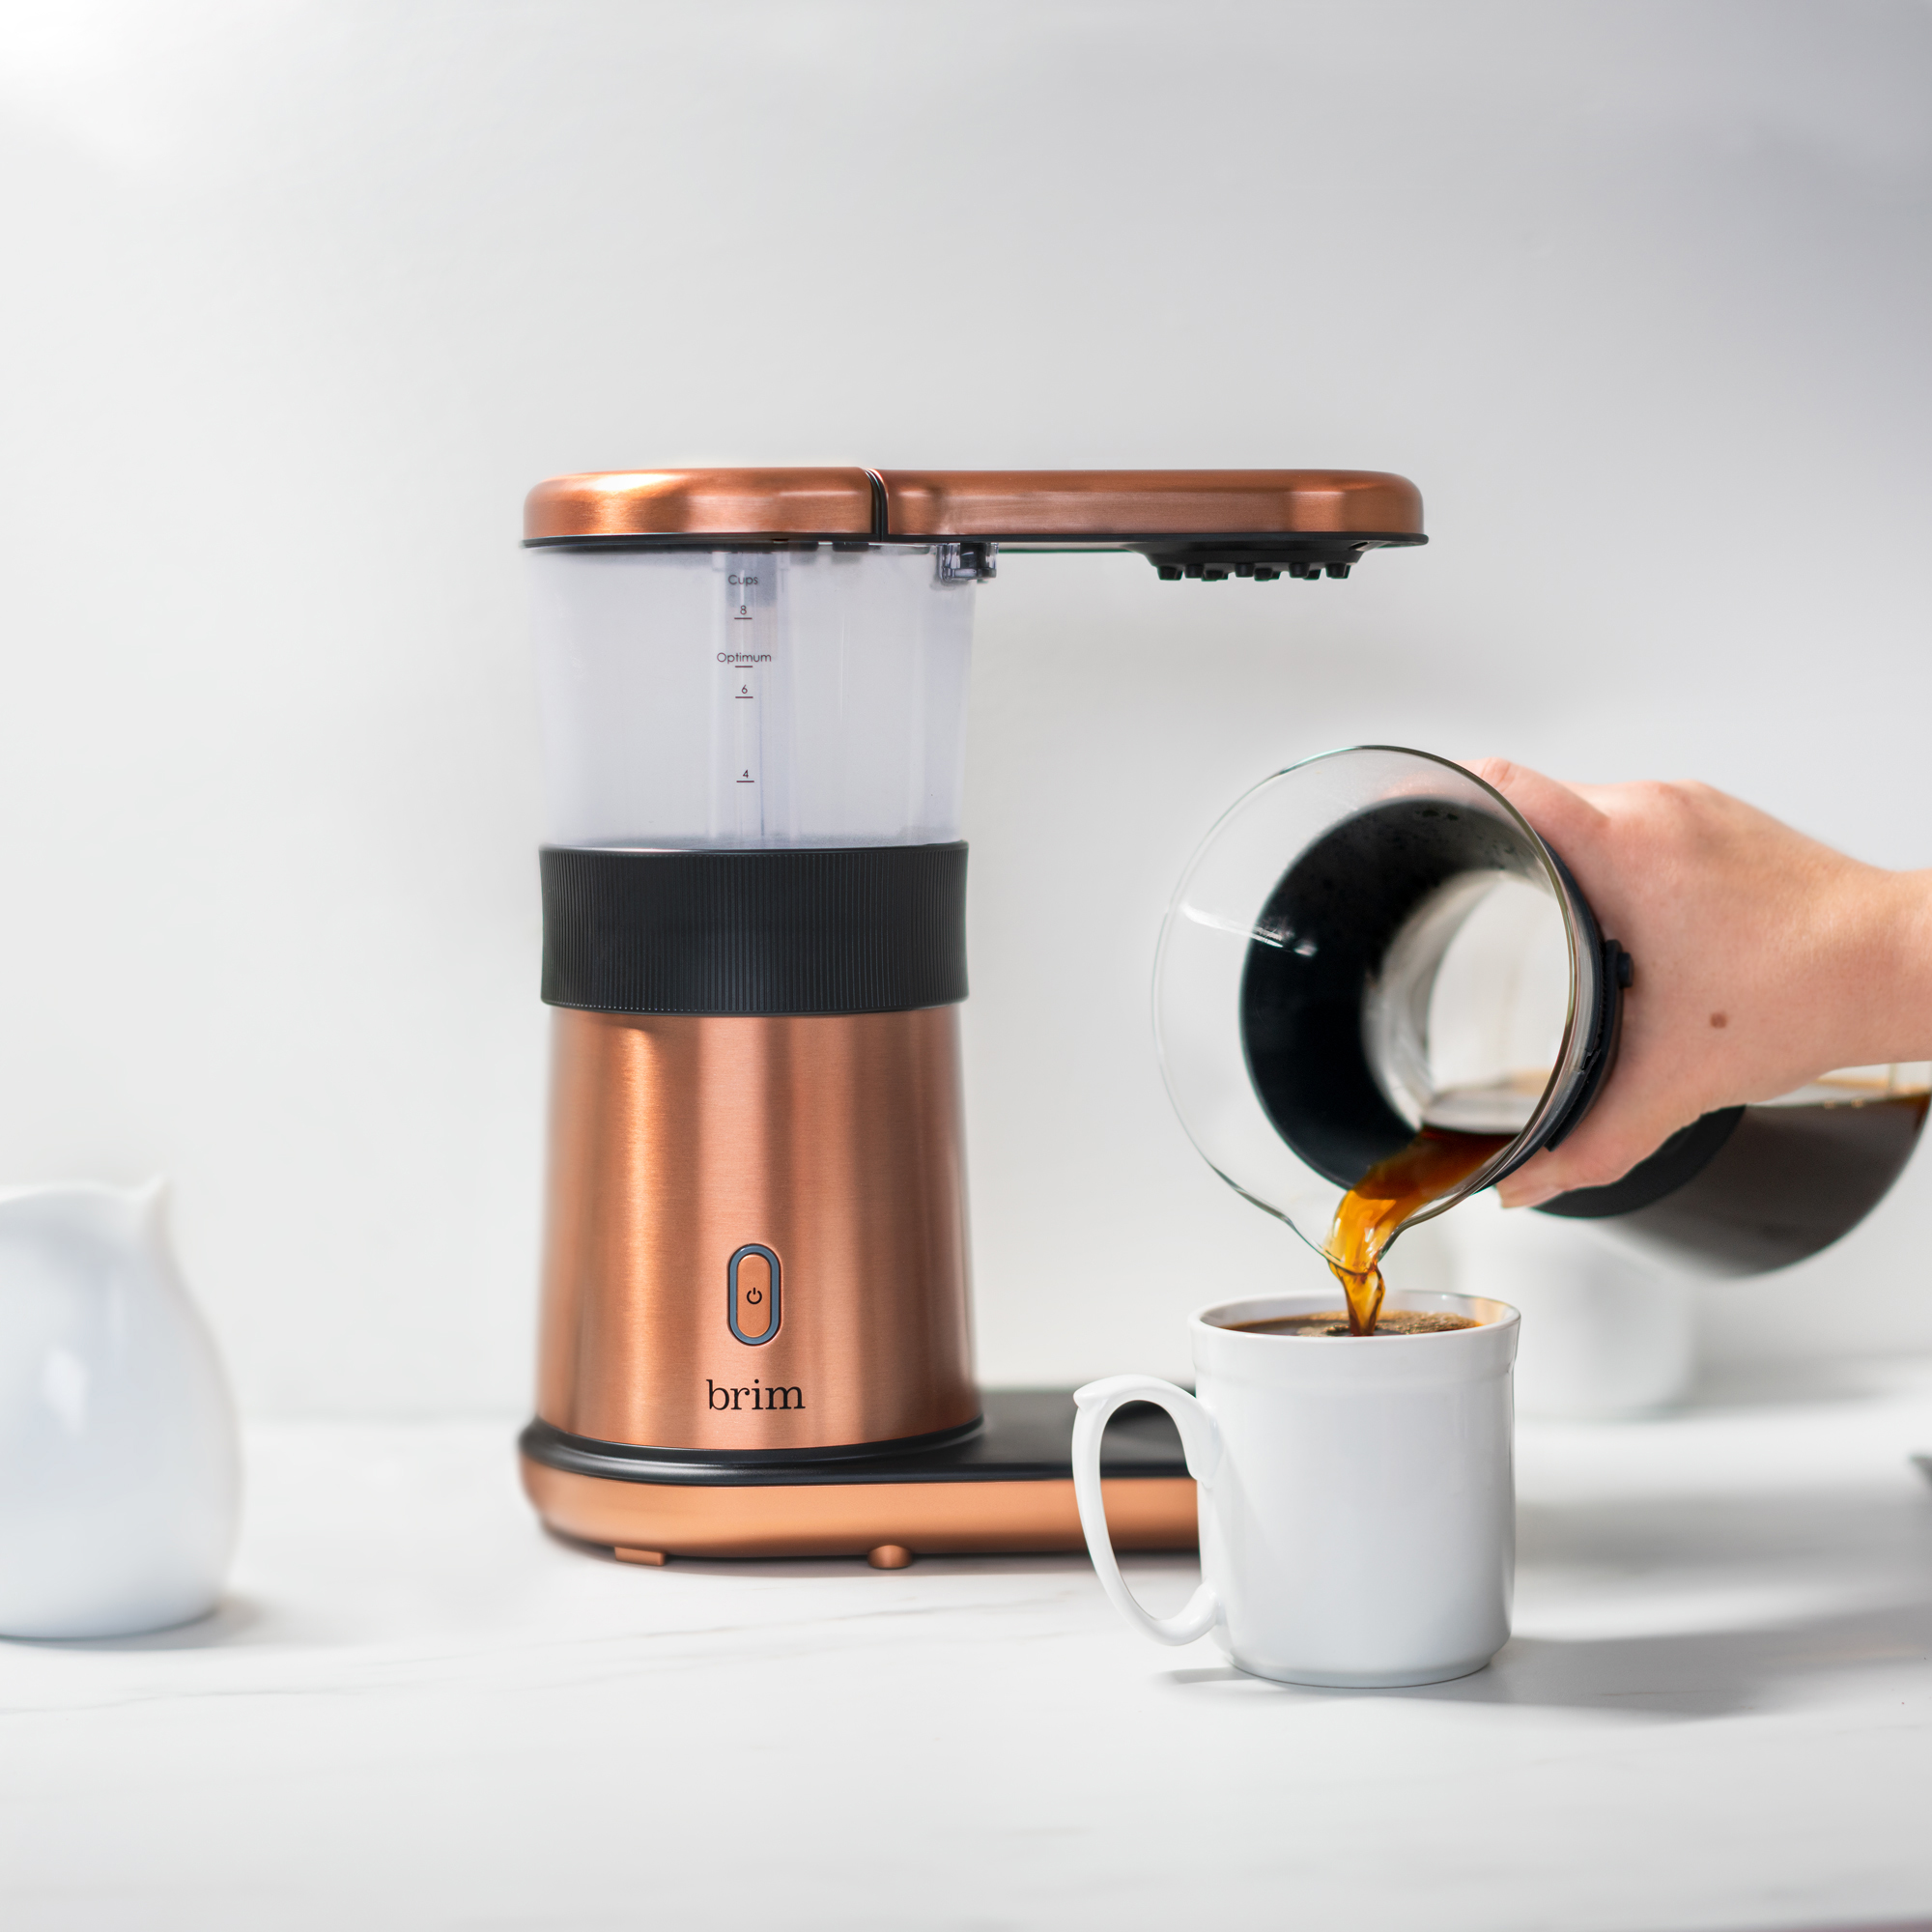 brim 8 cup pour over coffee machine in copper with hand pouring coffee from the carafe into a white mug